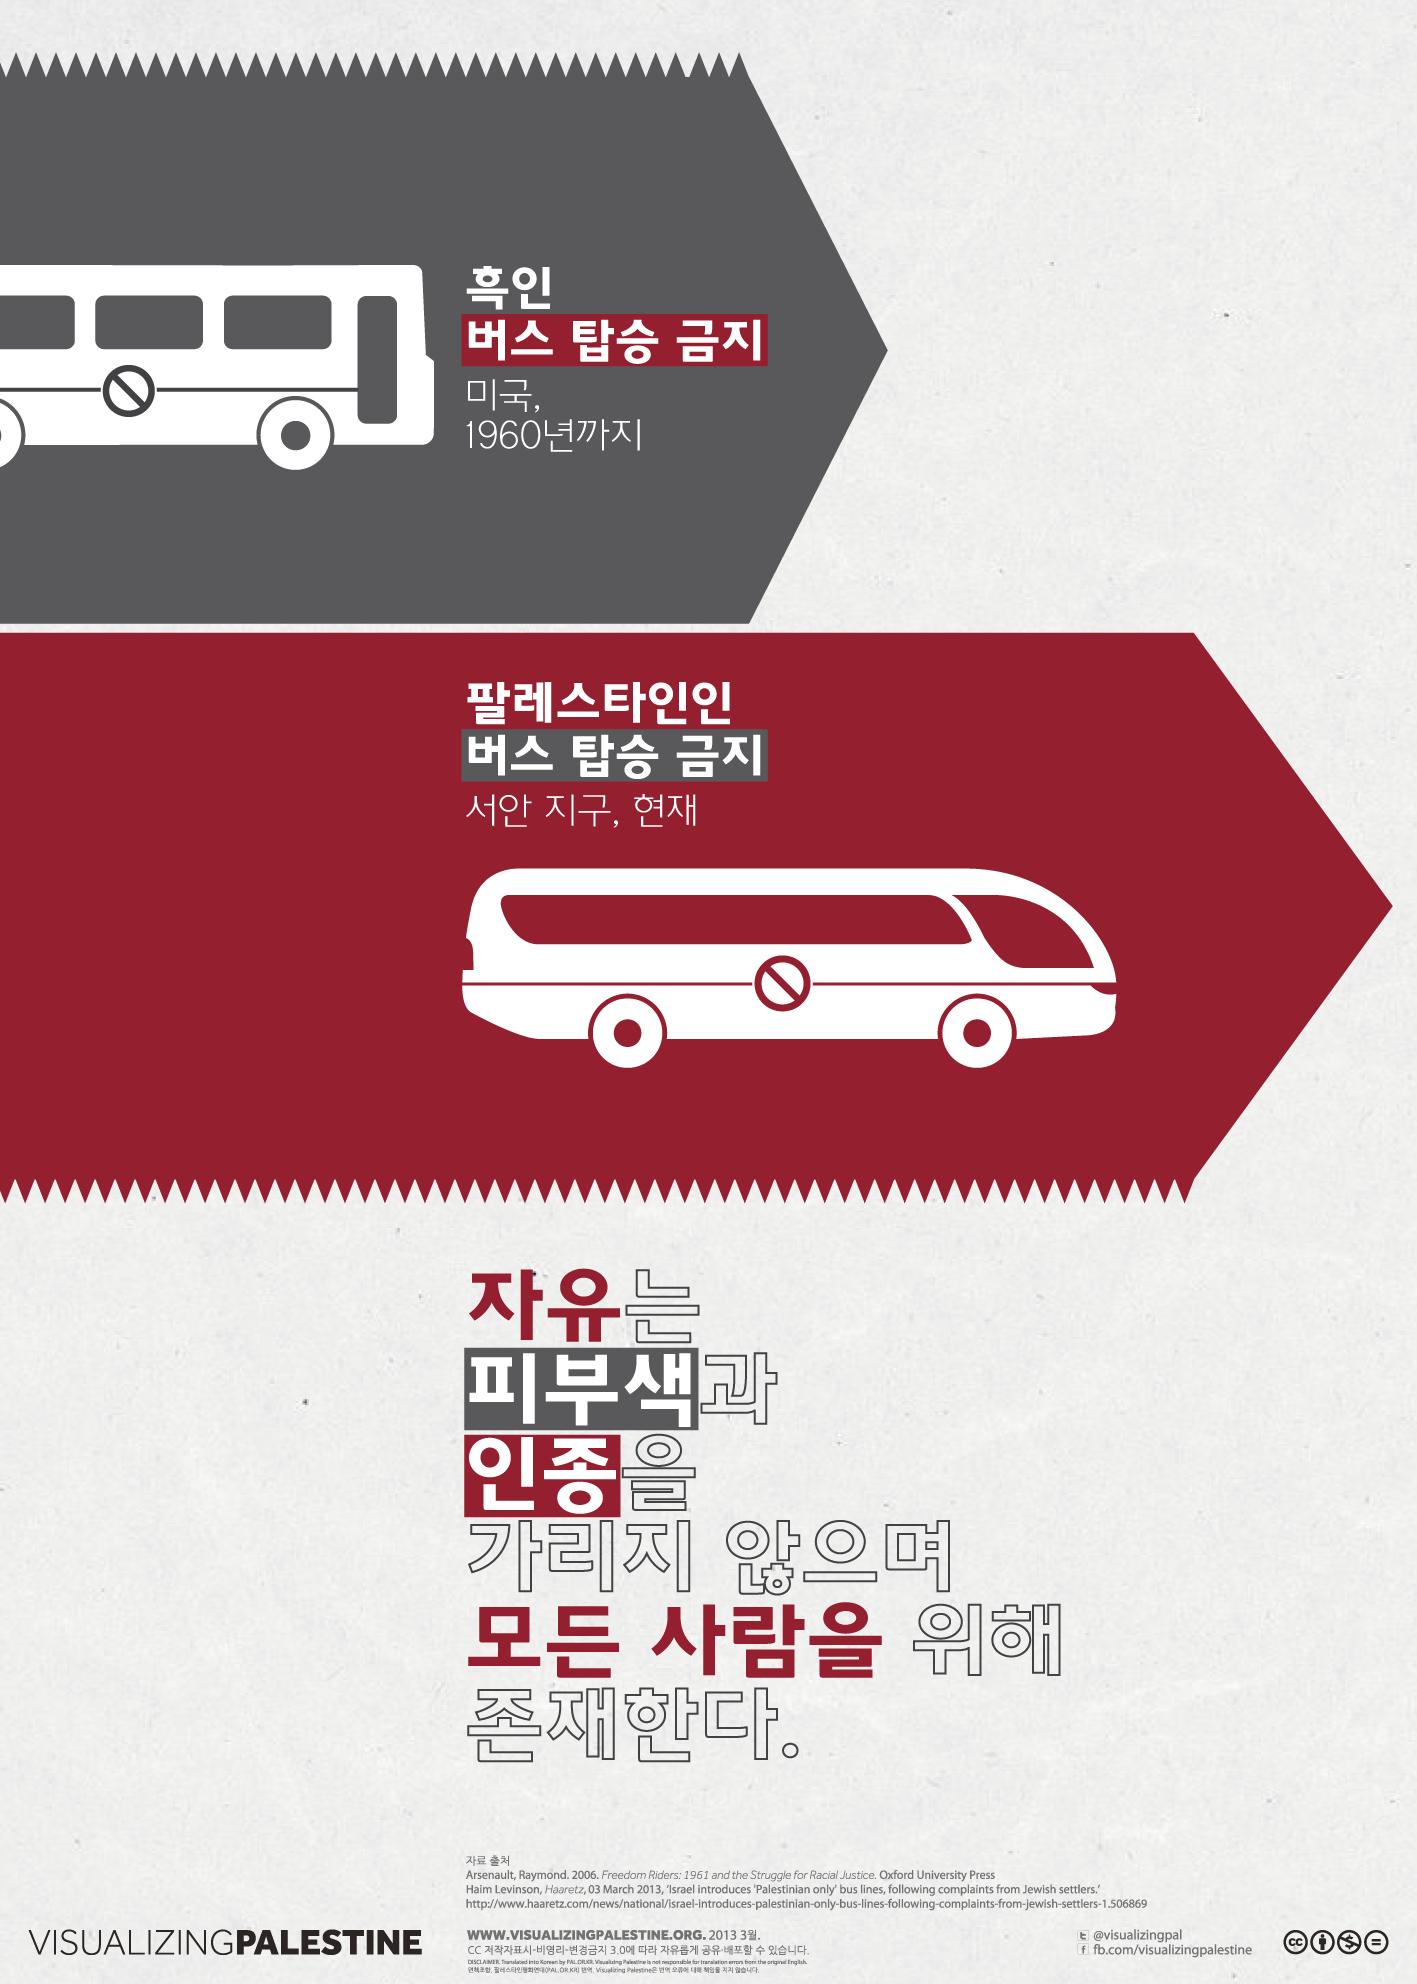 VP-BUS-2013-03-04_ko.png